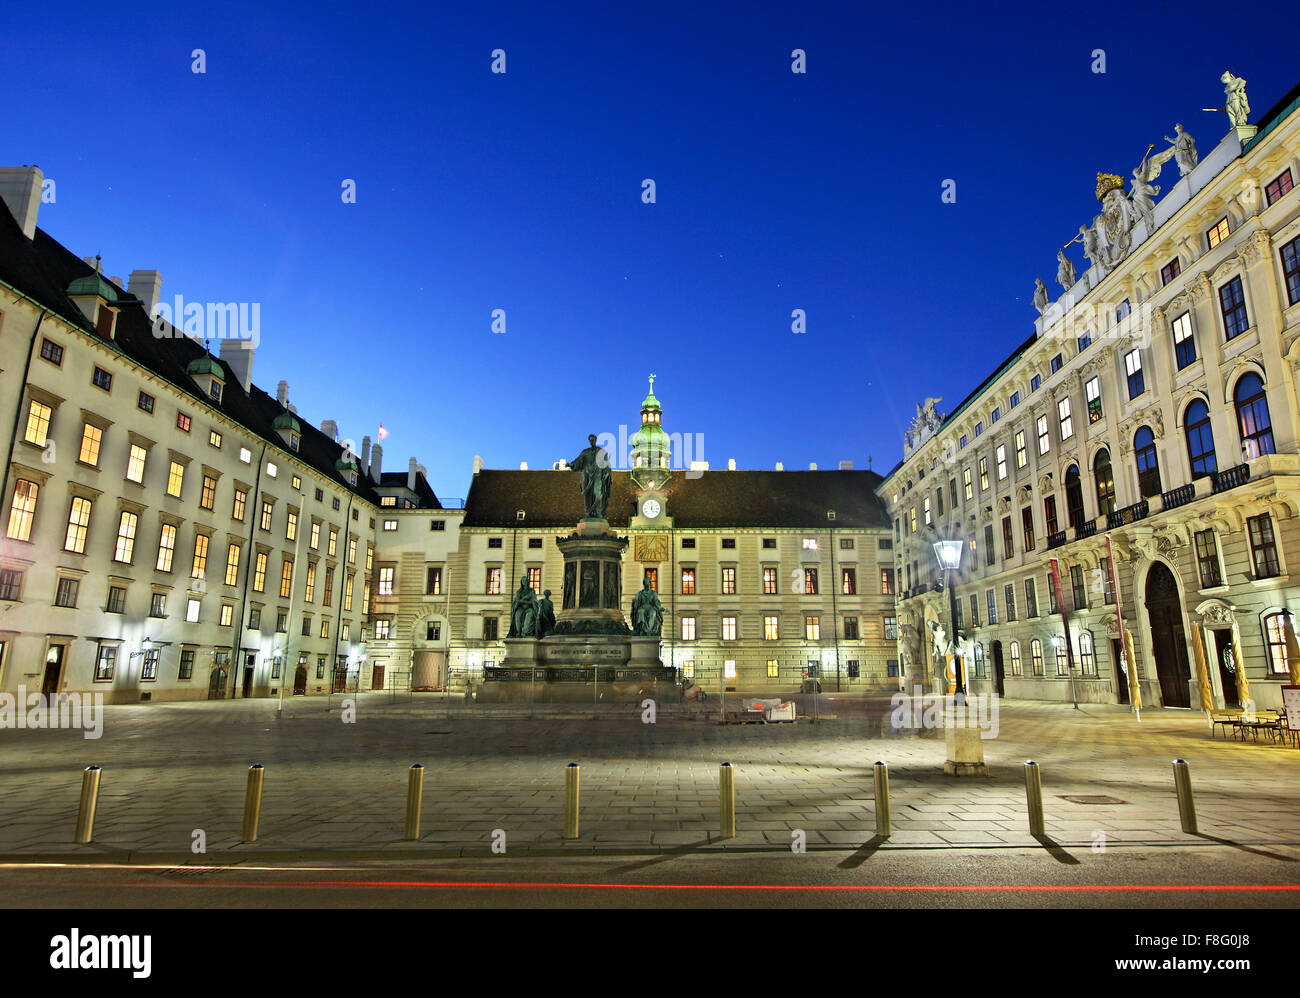 View of Hofburg (In der Burg courtyard), the imperial palace of the Habsburgs, from Michaelerplatz Vienna, Austria - Stock Image